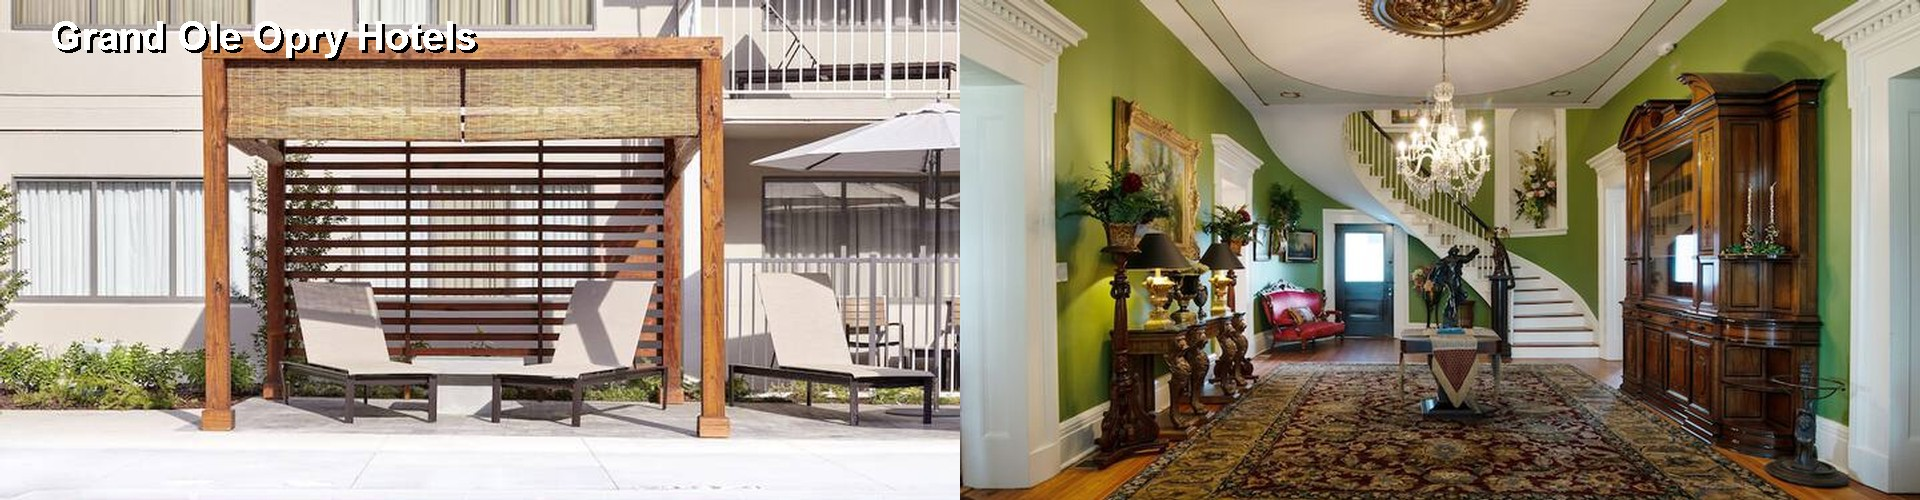 Hotels Near Grand Ole Opry